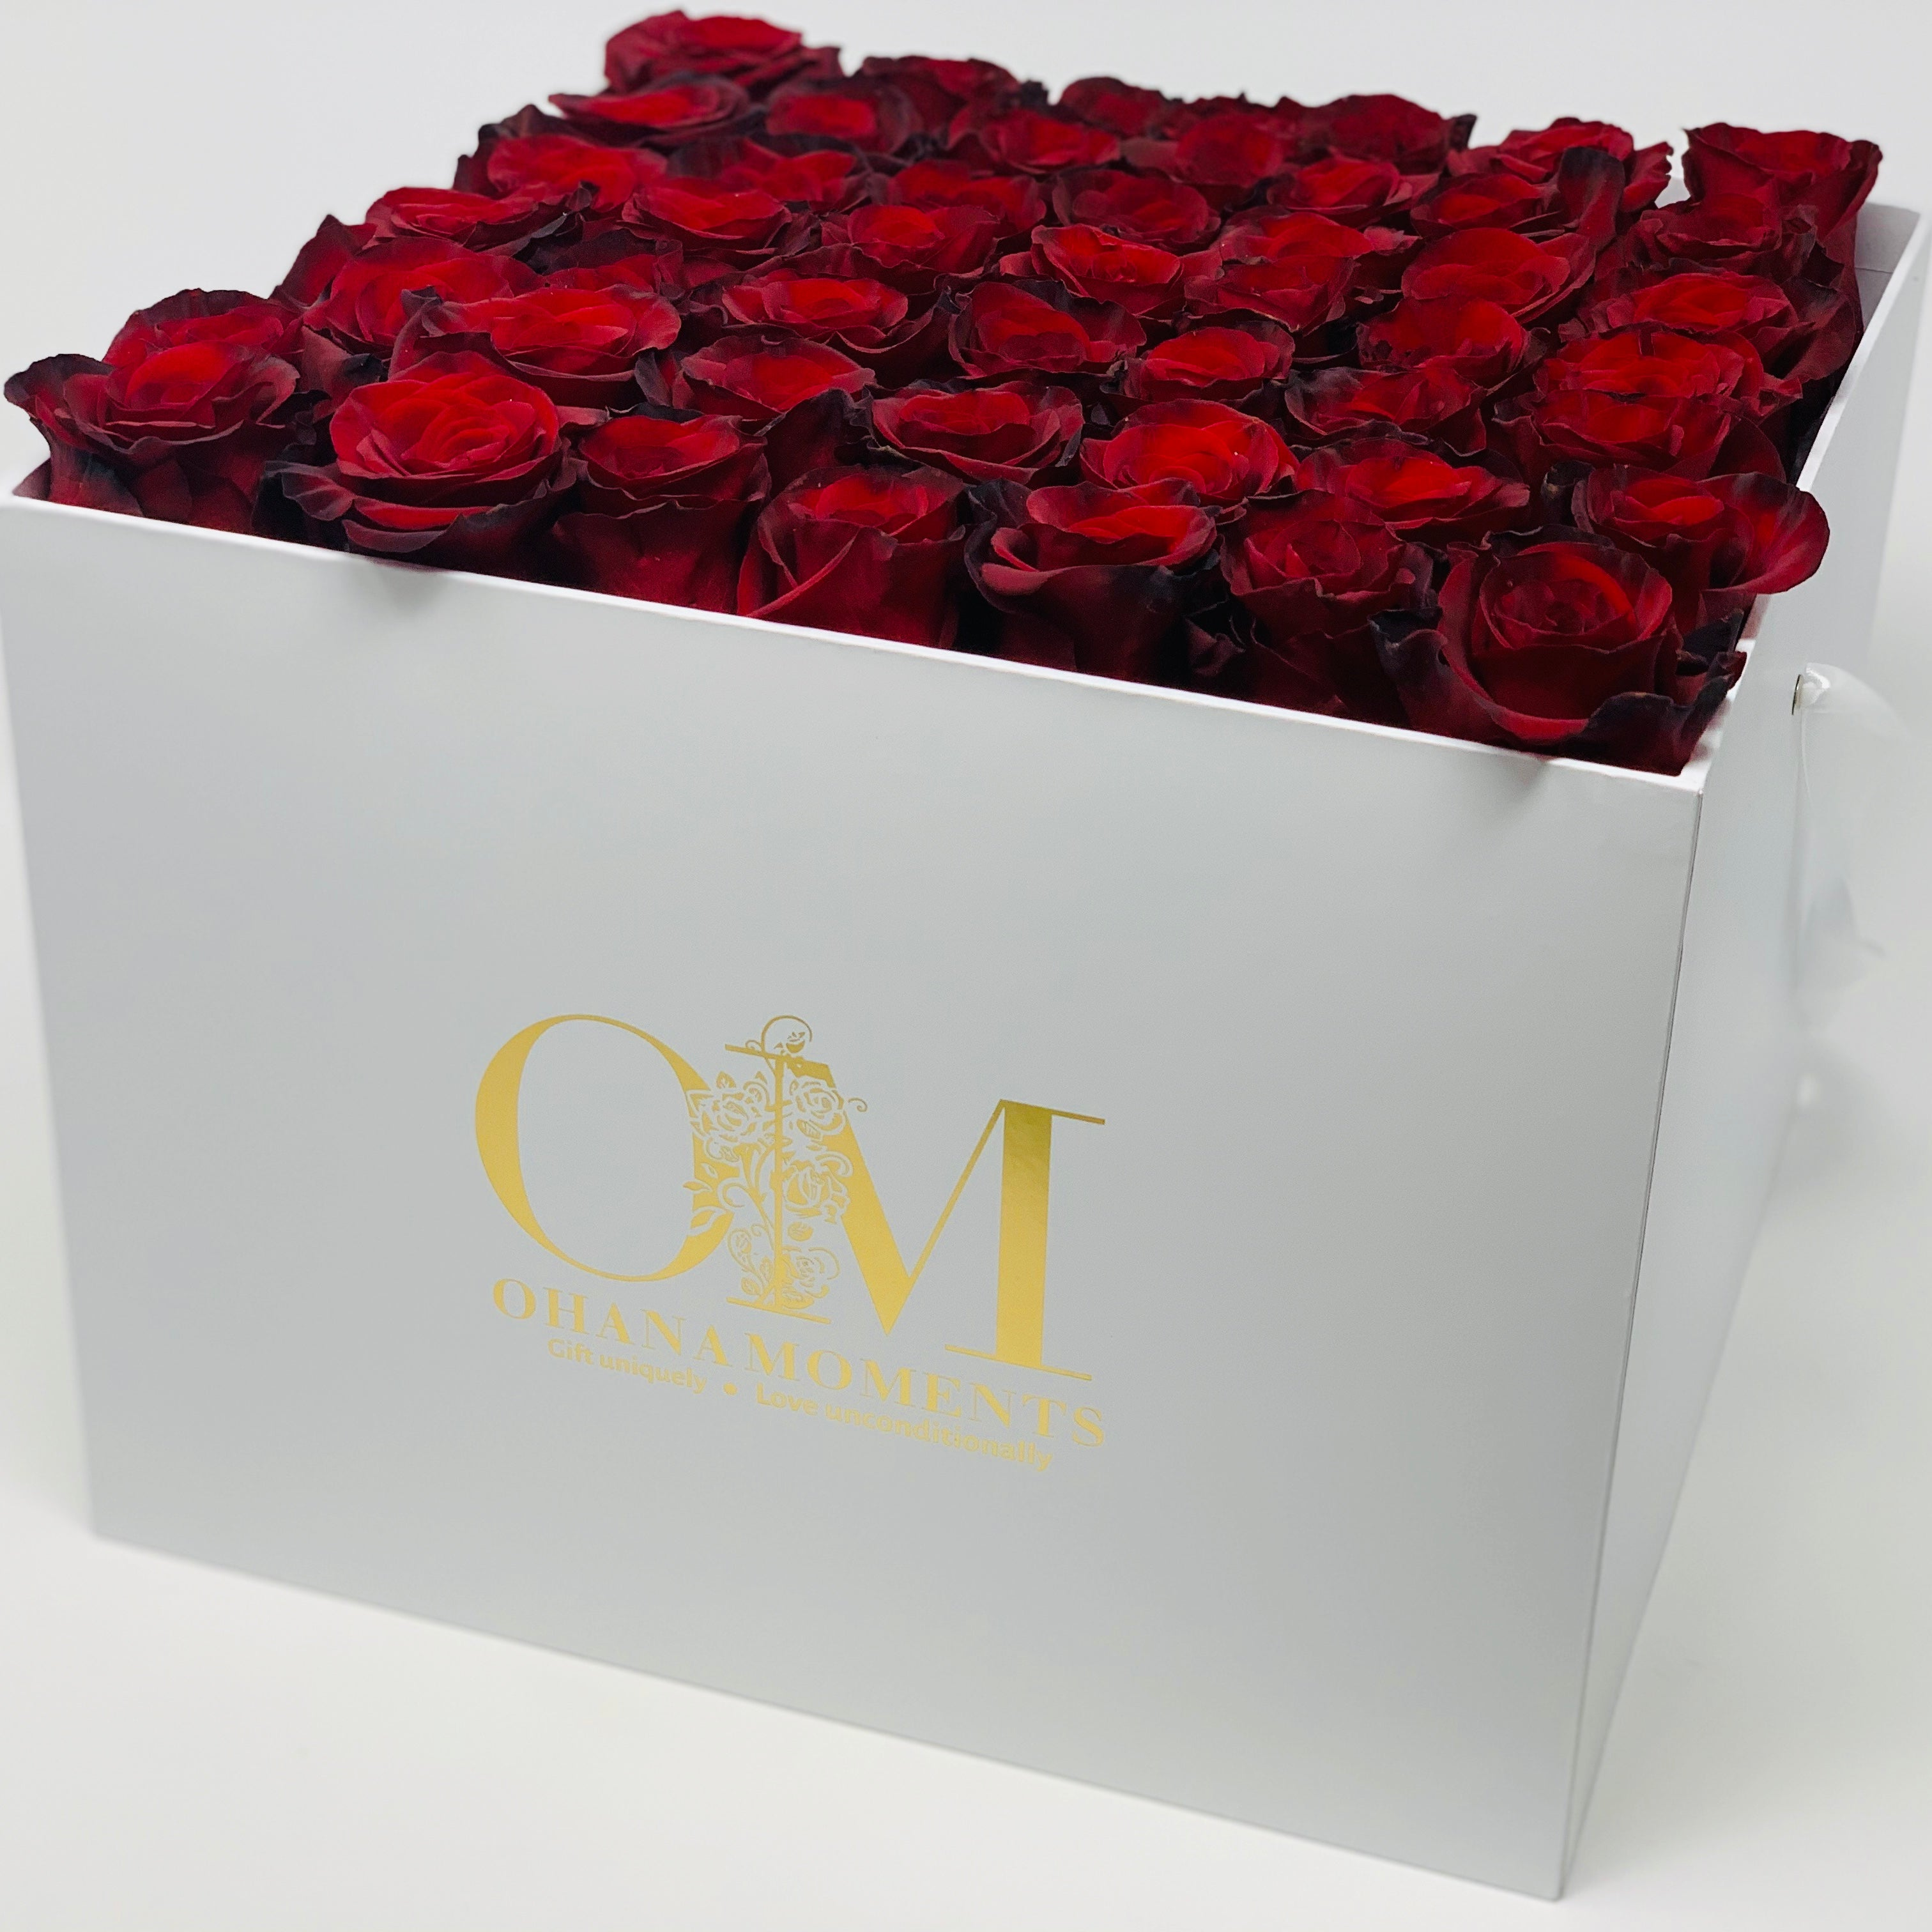 The Catalina Forever Rose Box - Large - Solid (36-42 roses)